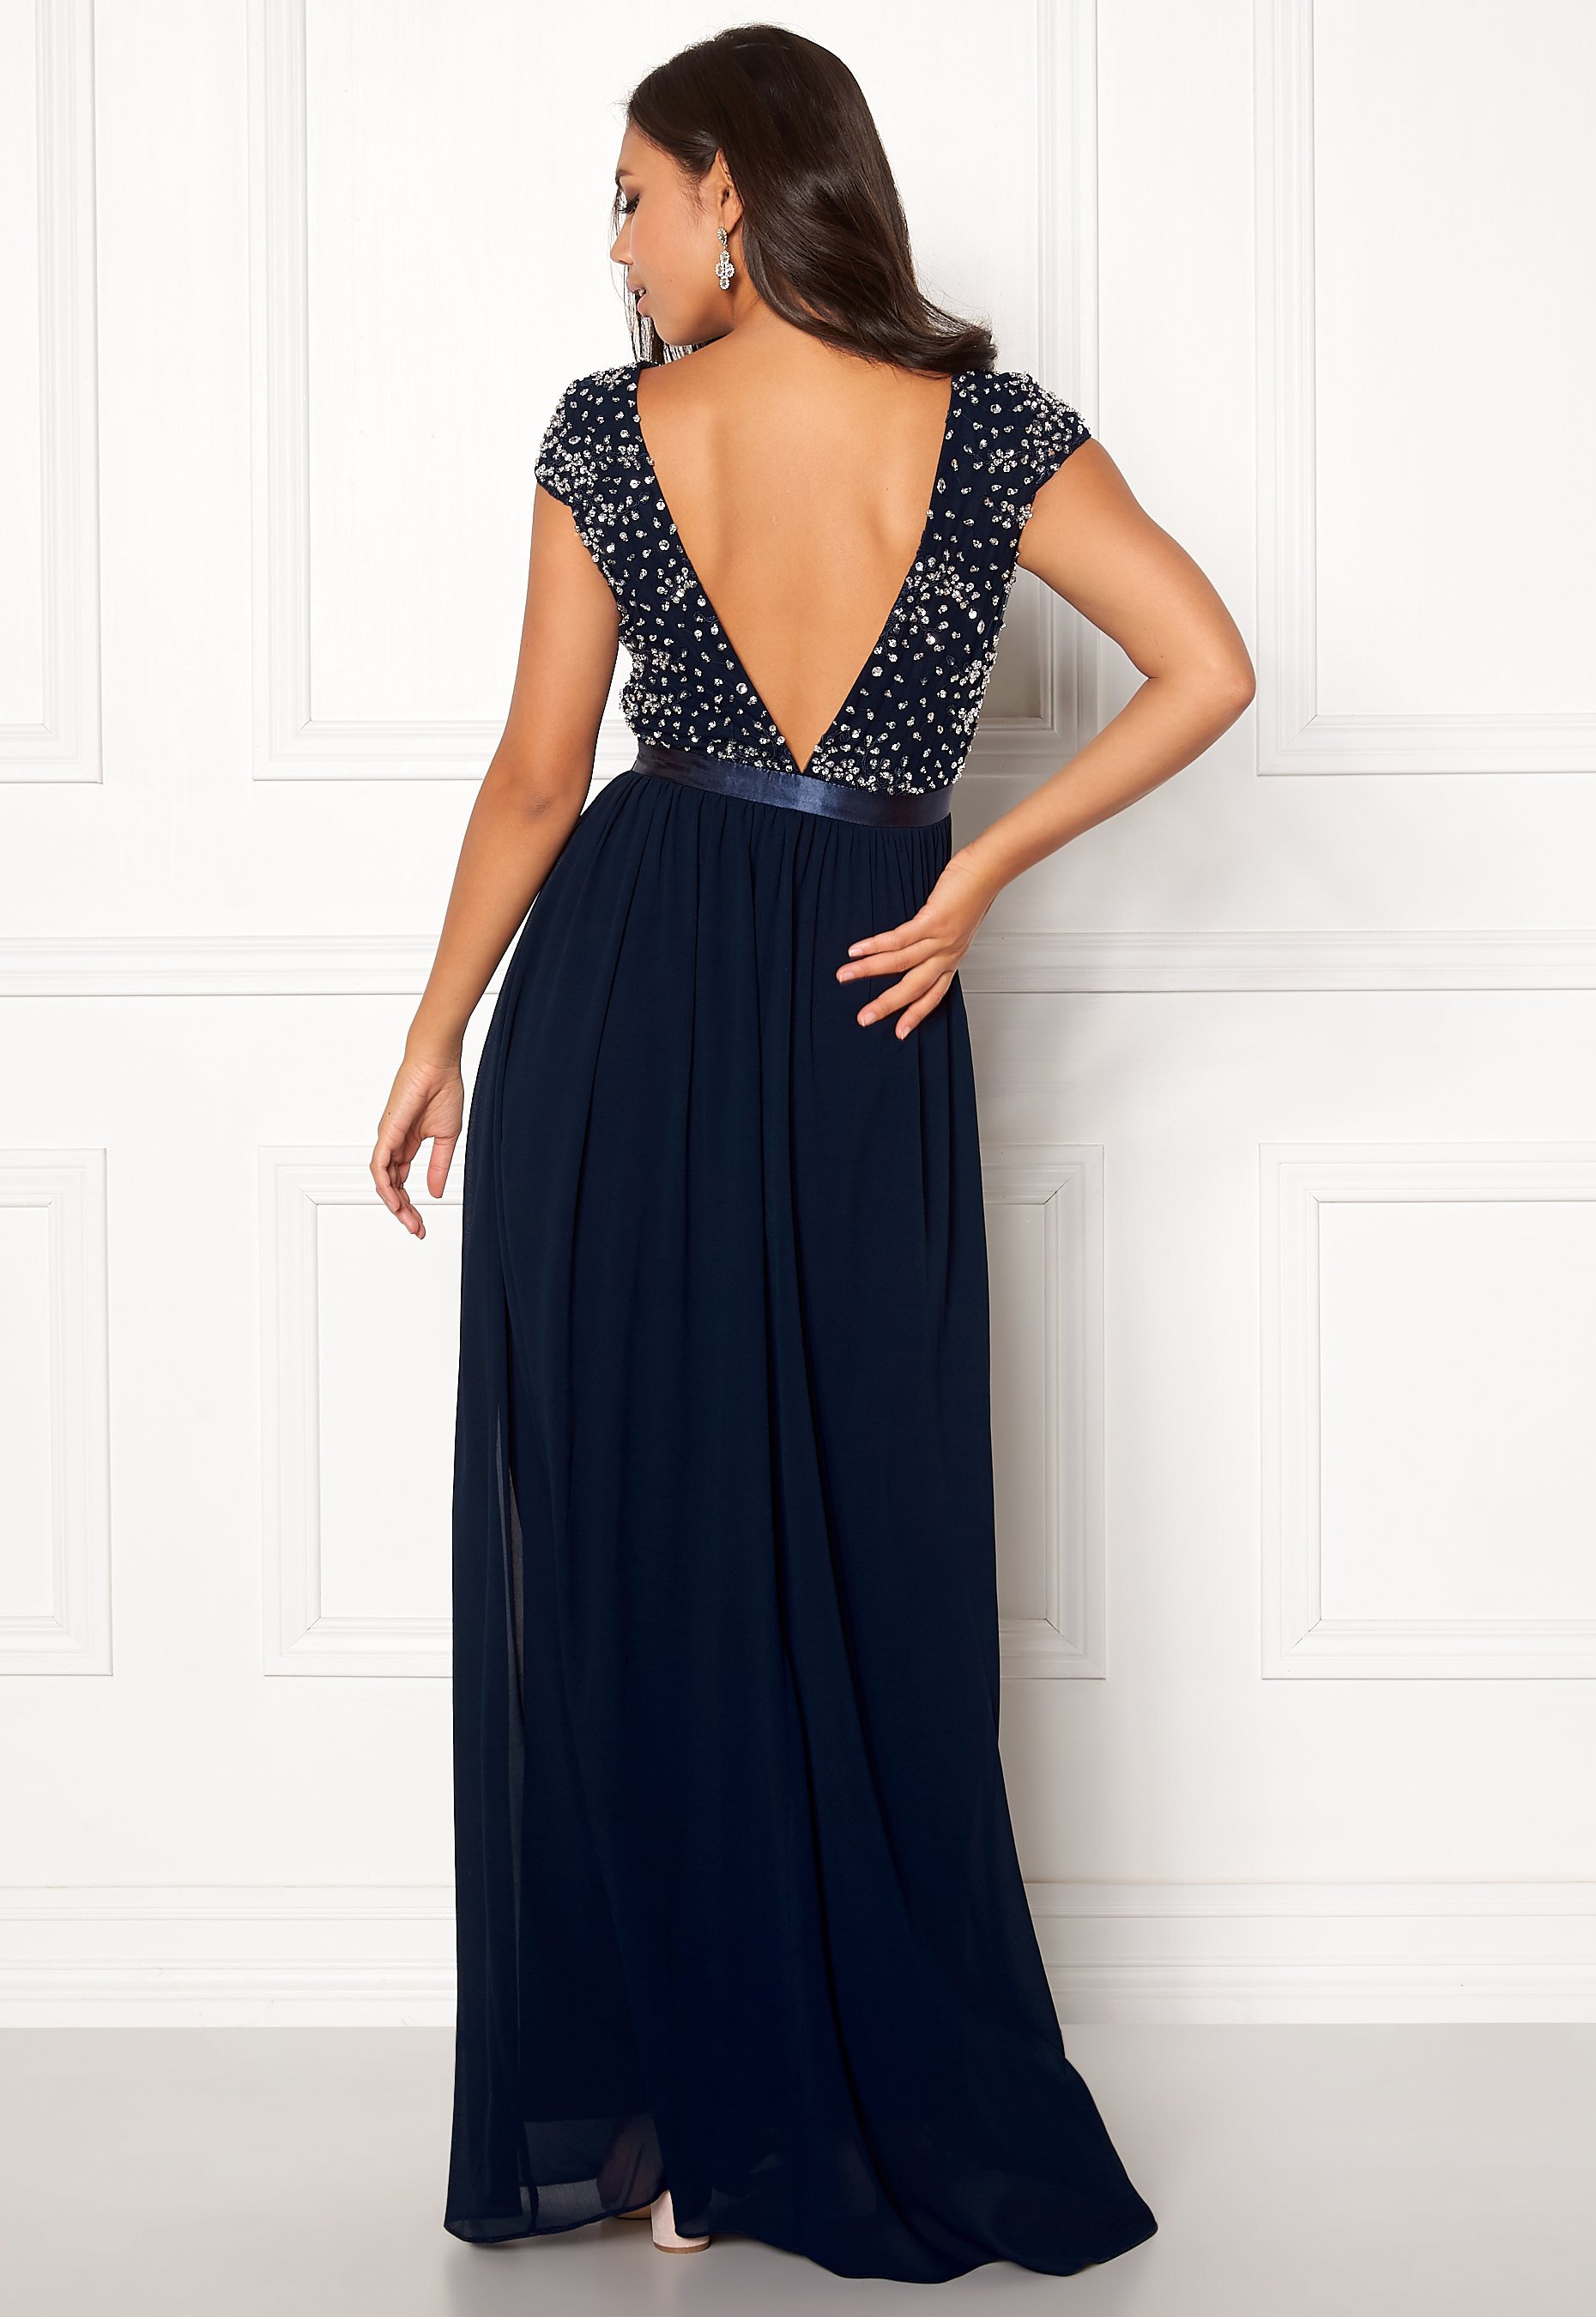 30693a962dfd Chiara Forthi Viviere Sparkling Gown Midnight blue - Bubbleroom